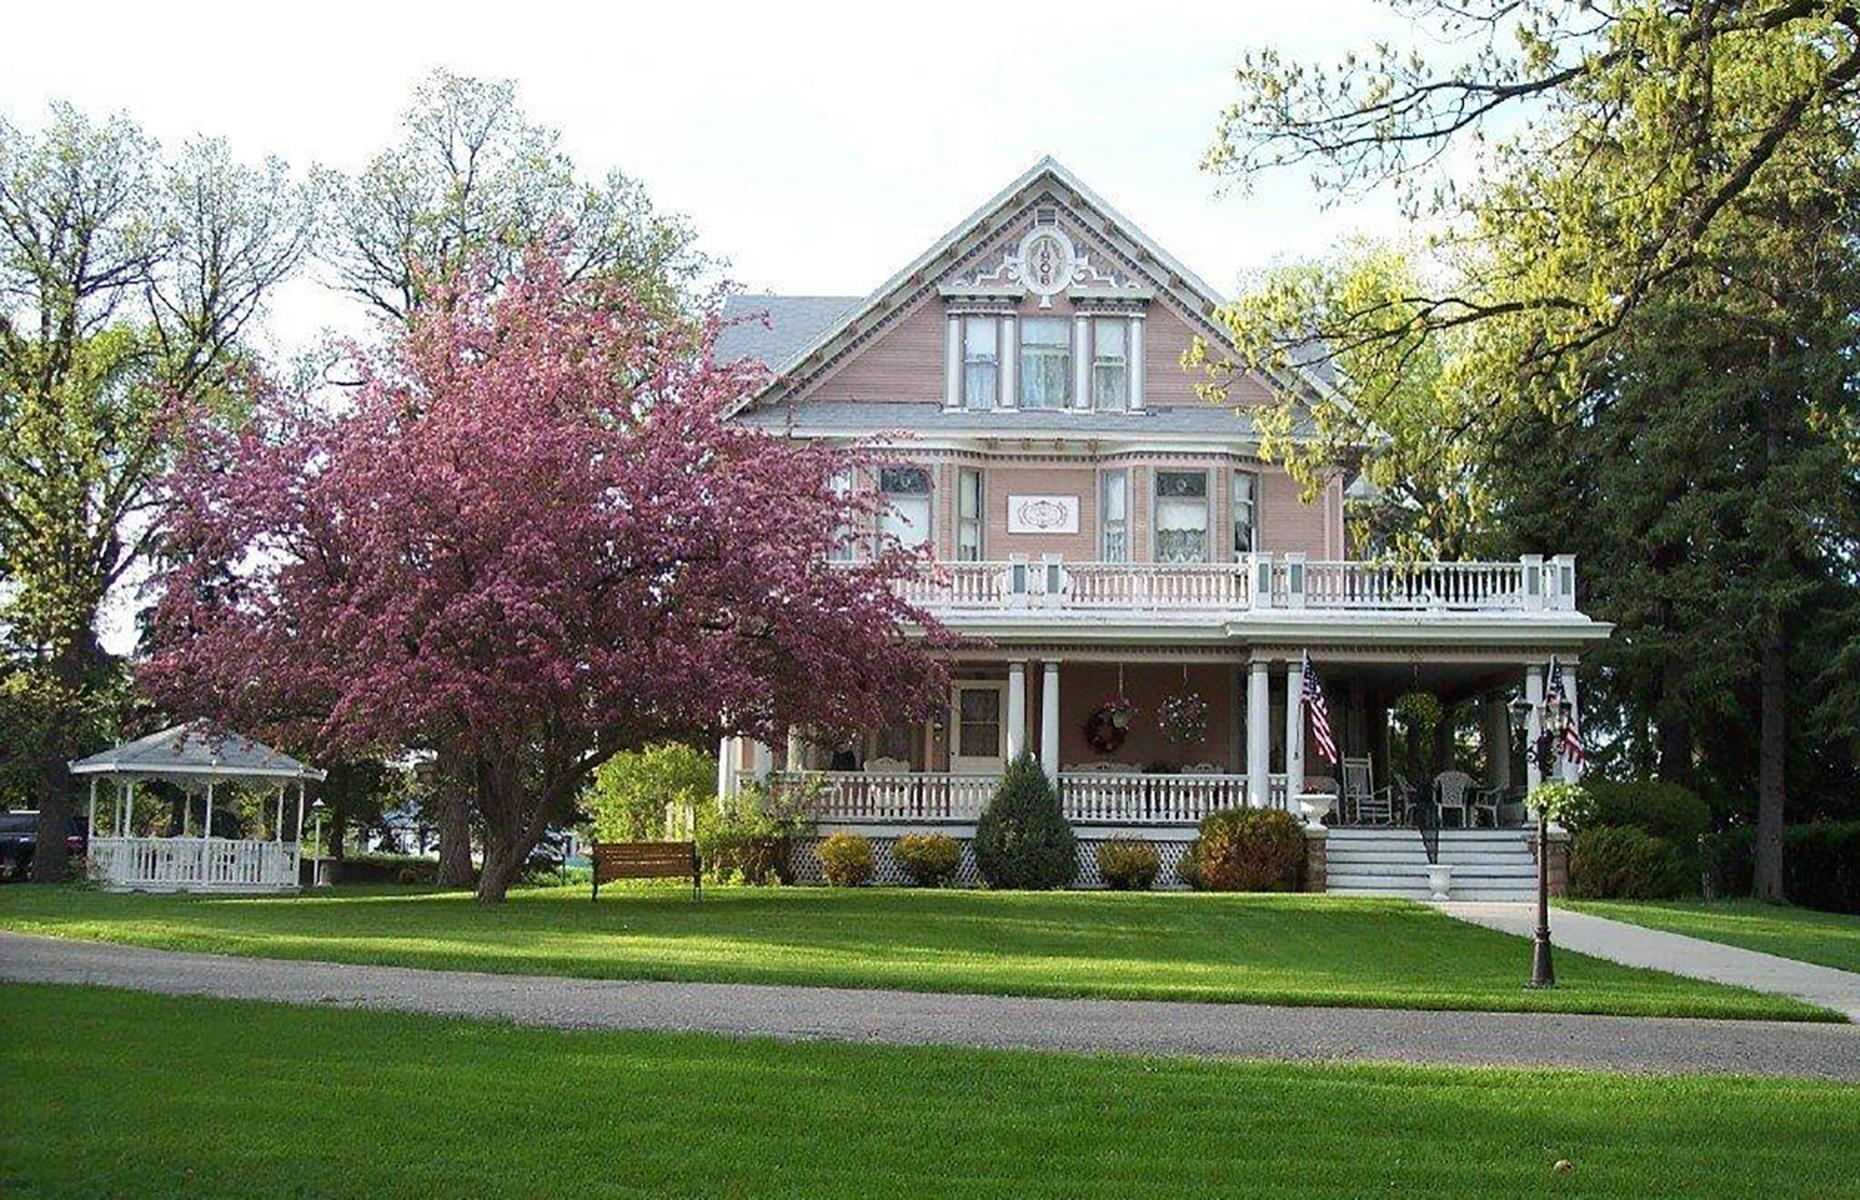 Slide 36 of 52: From the quiet, sweeping plains to the surreal Badlands, North Dakota is the epitome of the Midwest. And travelers can still find sweet little B&Bs, such as the inviting Dakotah Rose on the banks of the Souris River in Minot. Set in an elegant home dating back to the early 1900s, the rooms have lovely historical touches like leaded glass windows and clawfoot tubs, while the garden is populated by maples, oaks and lilac bushes.